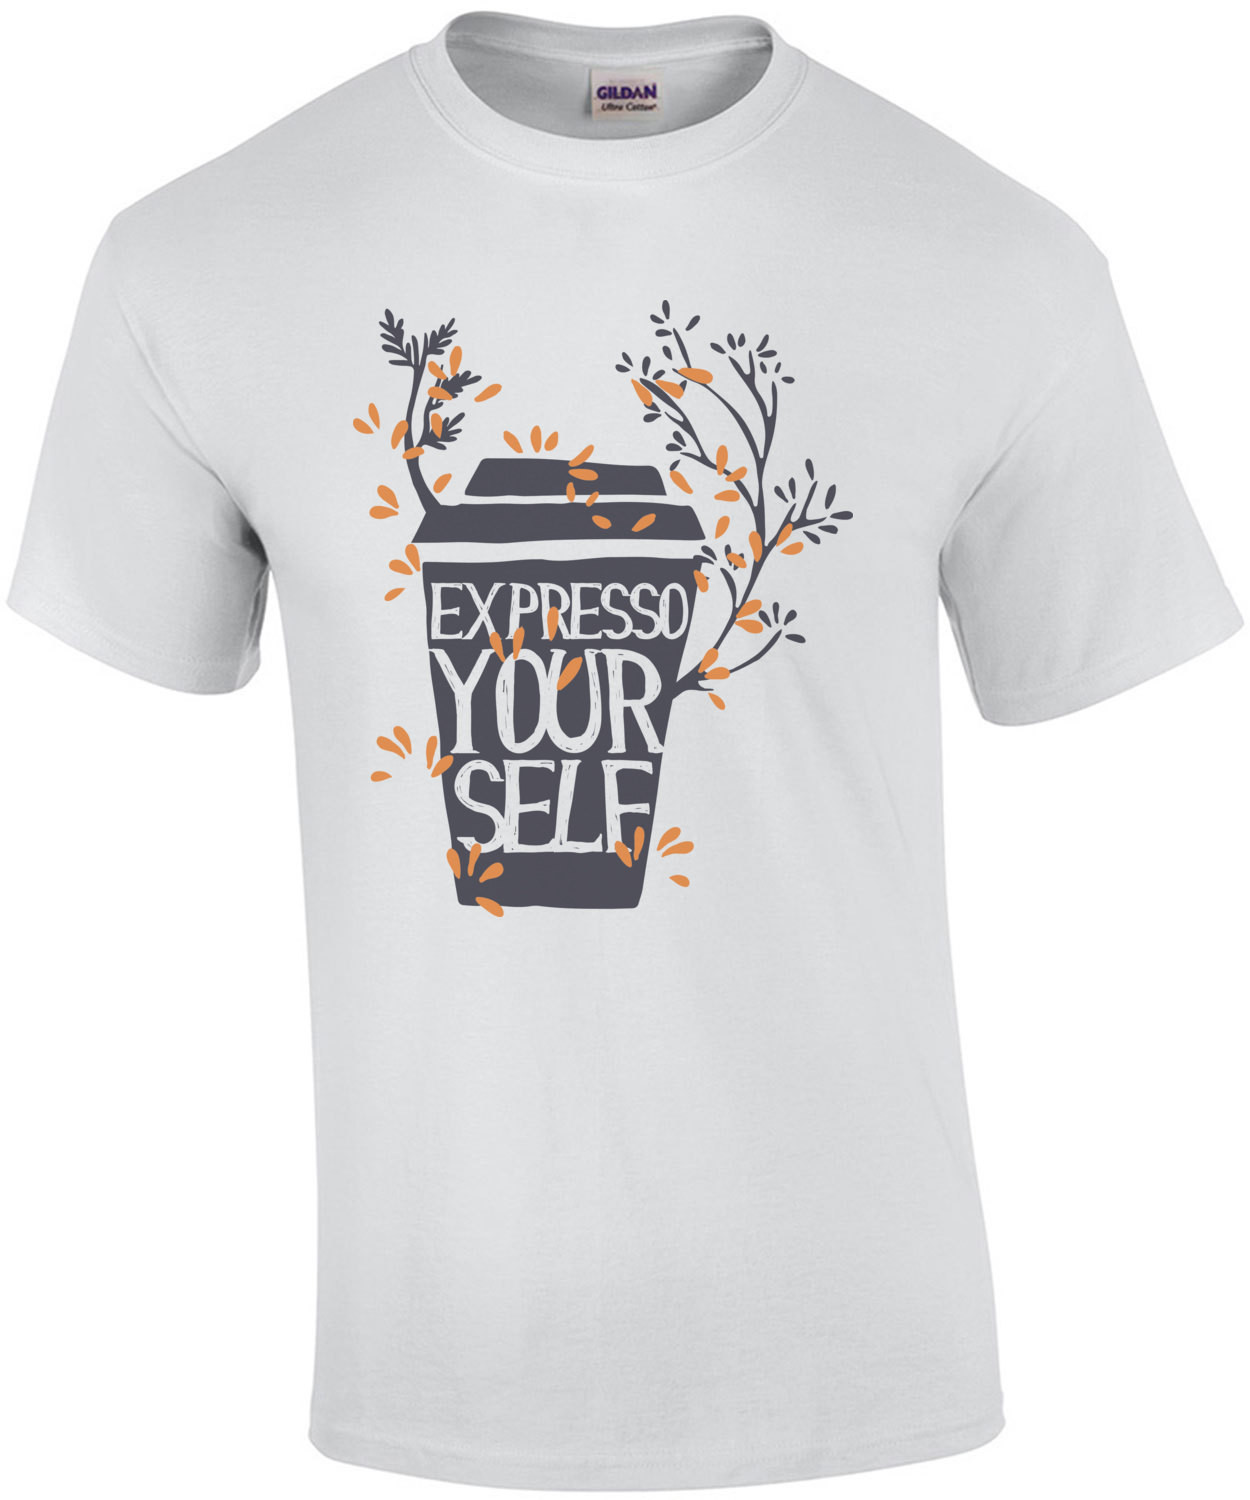 Expresso Your Self T-Shirt